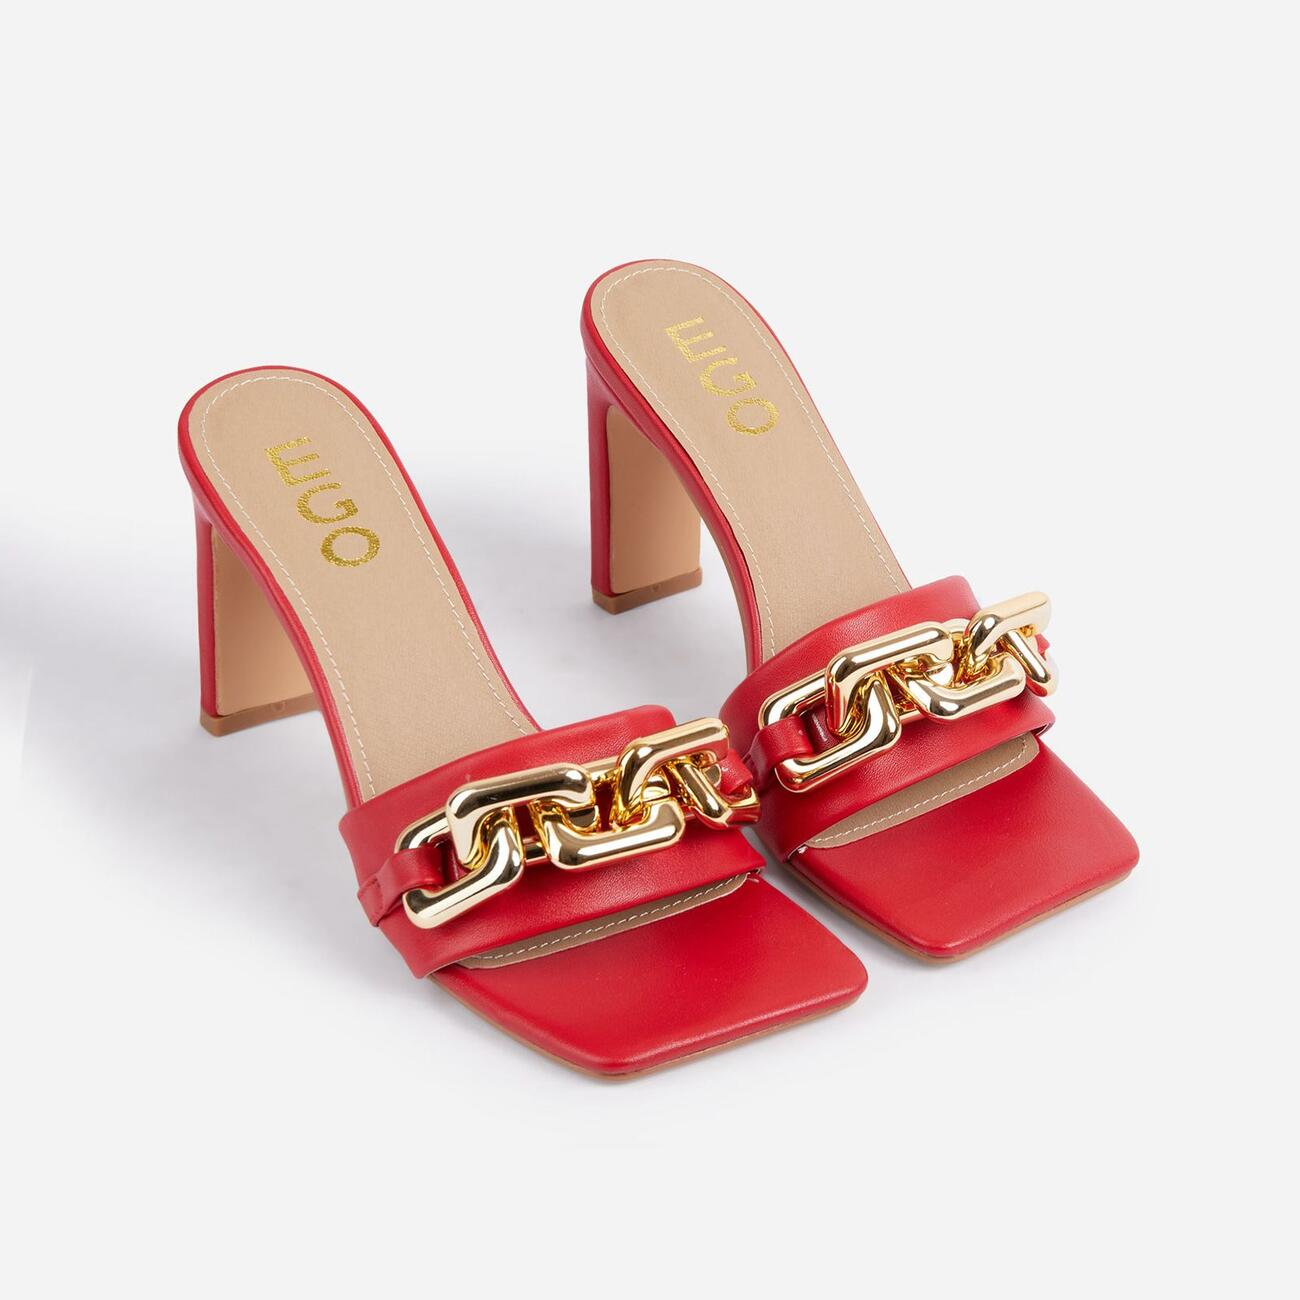 Link-Up Chunky Chain Detail Square Toe Think Block Heel Mule In Red Faux Leather Image 2